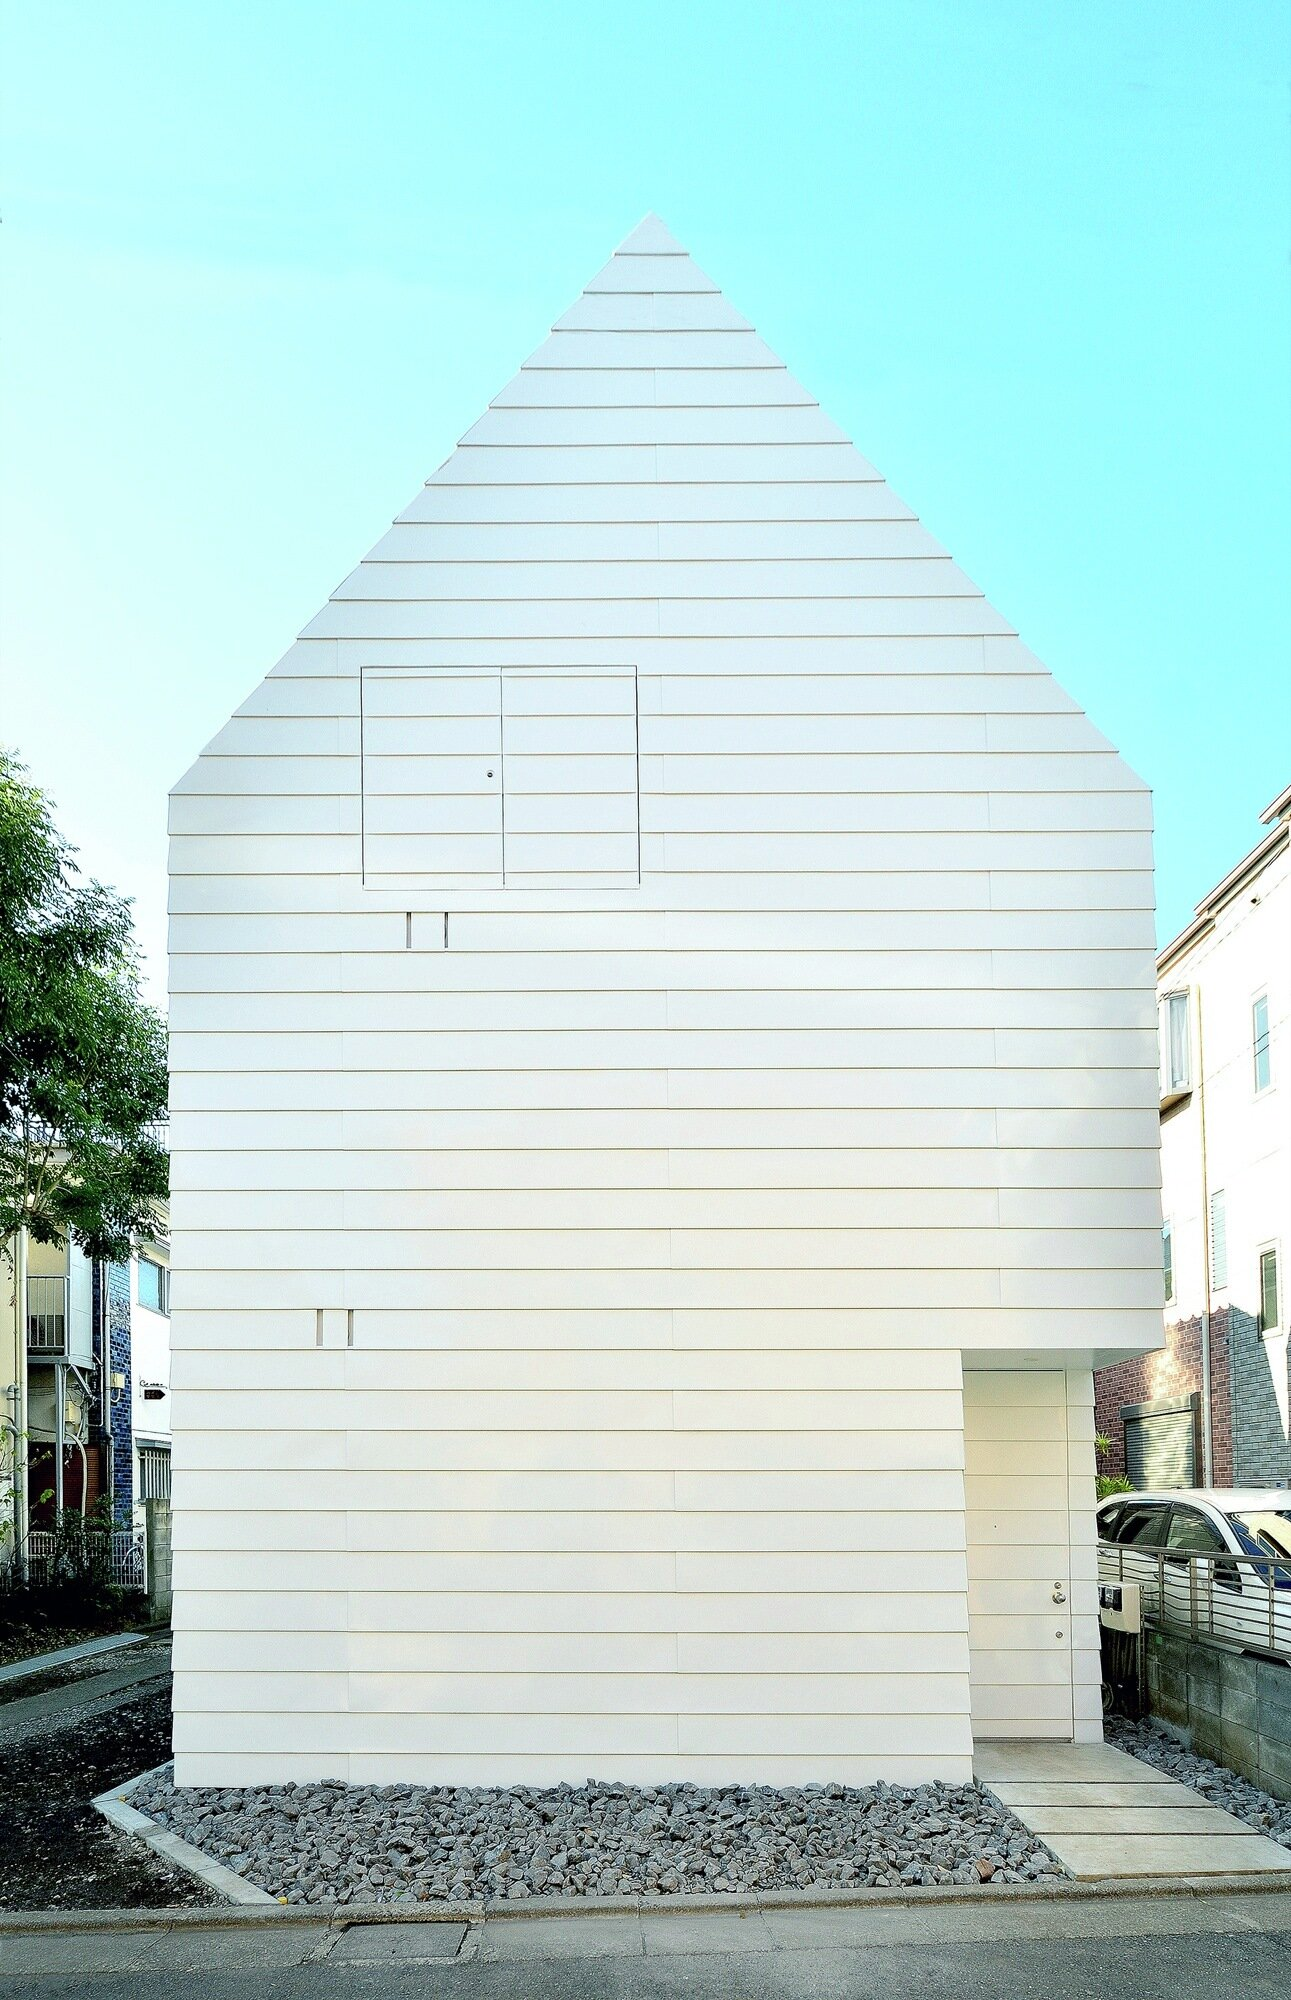 Townhouse in Takaban - Niji Architects - Tokyo - Exterior - Humble Homes